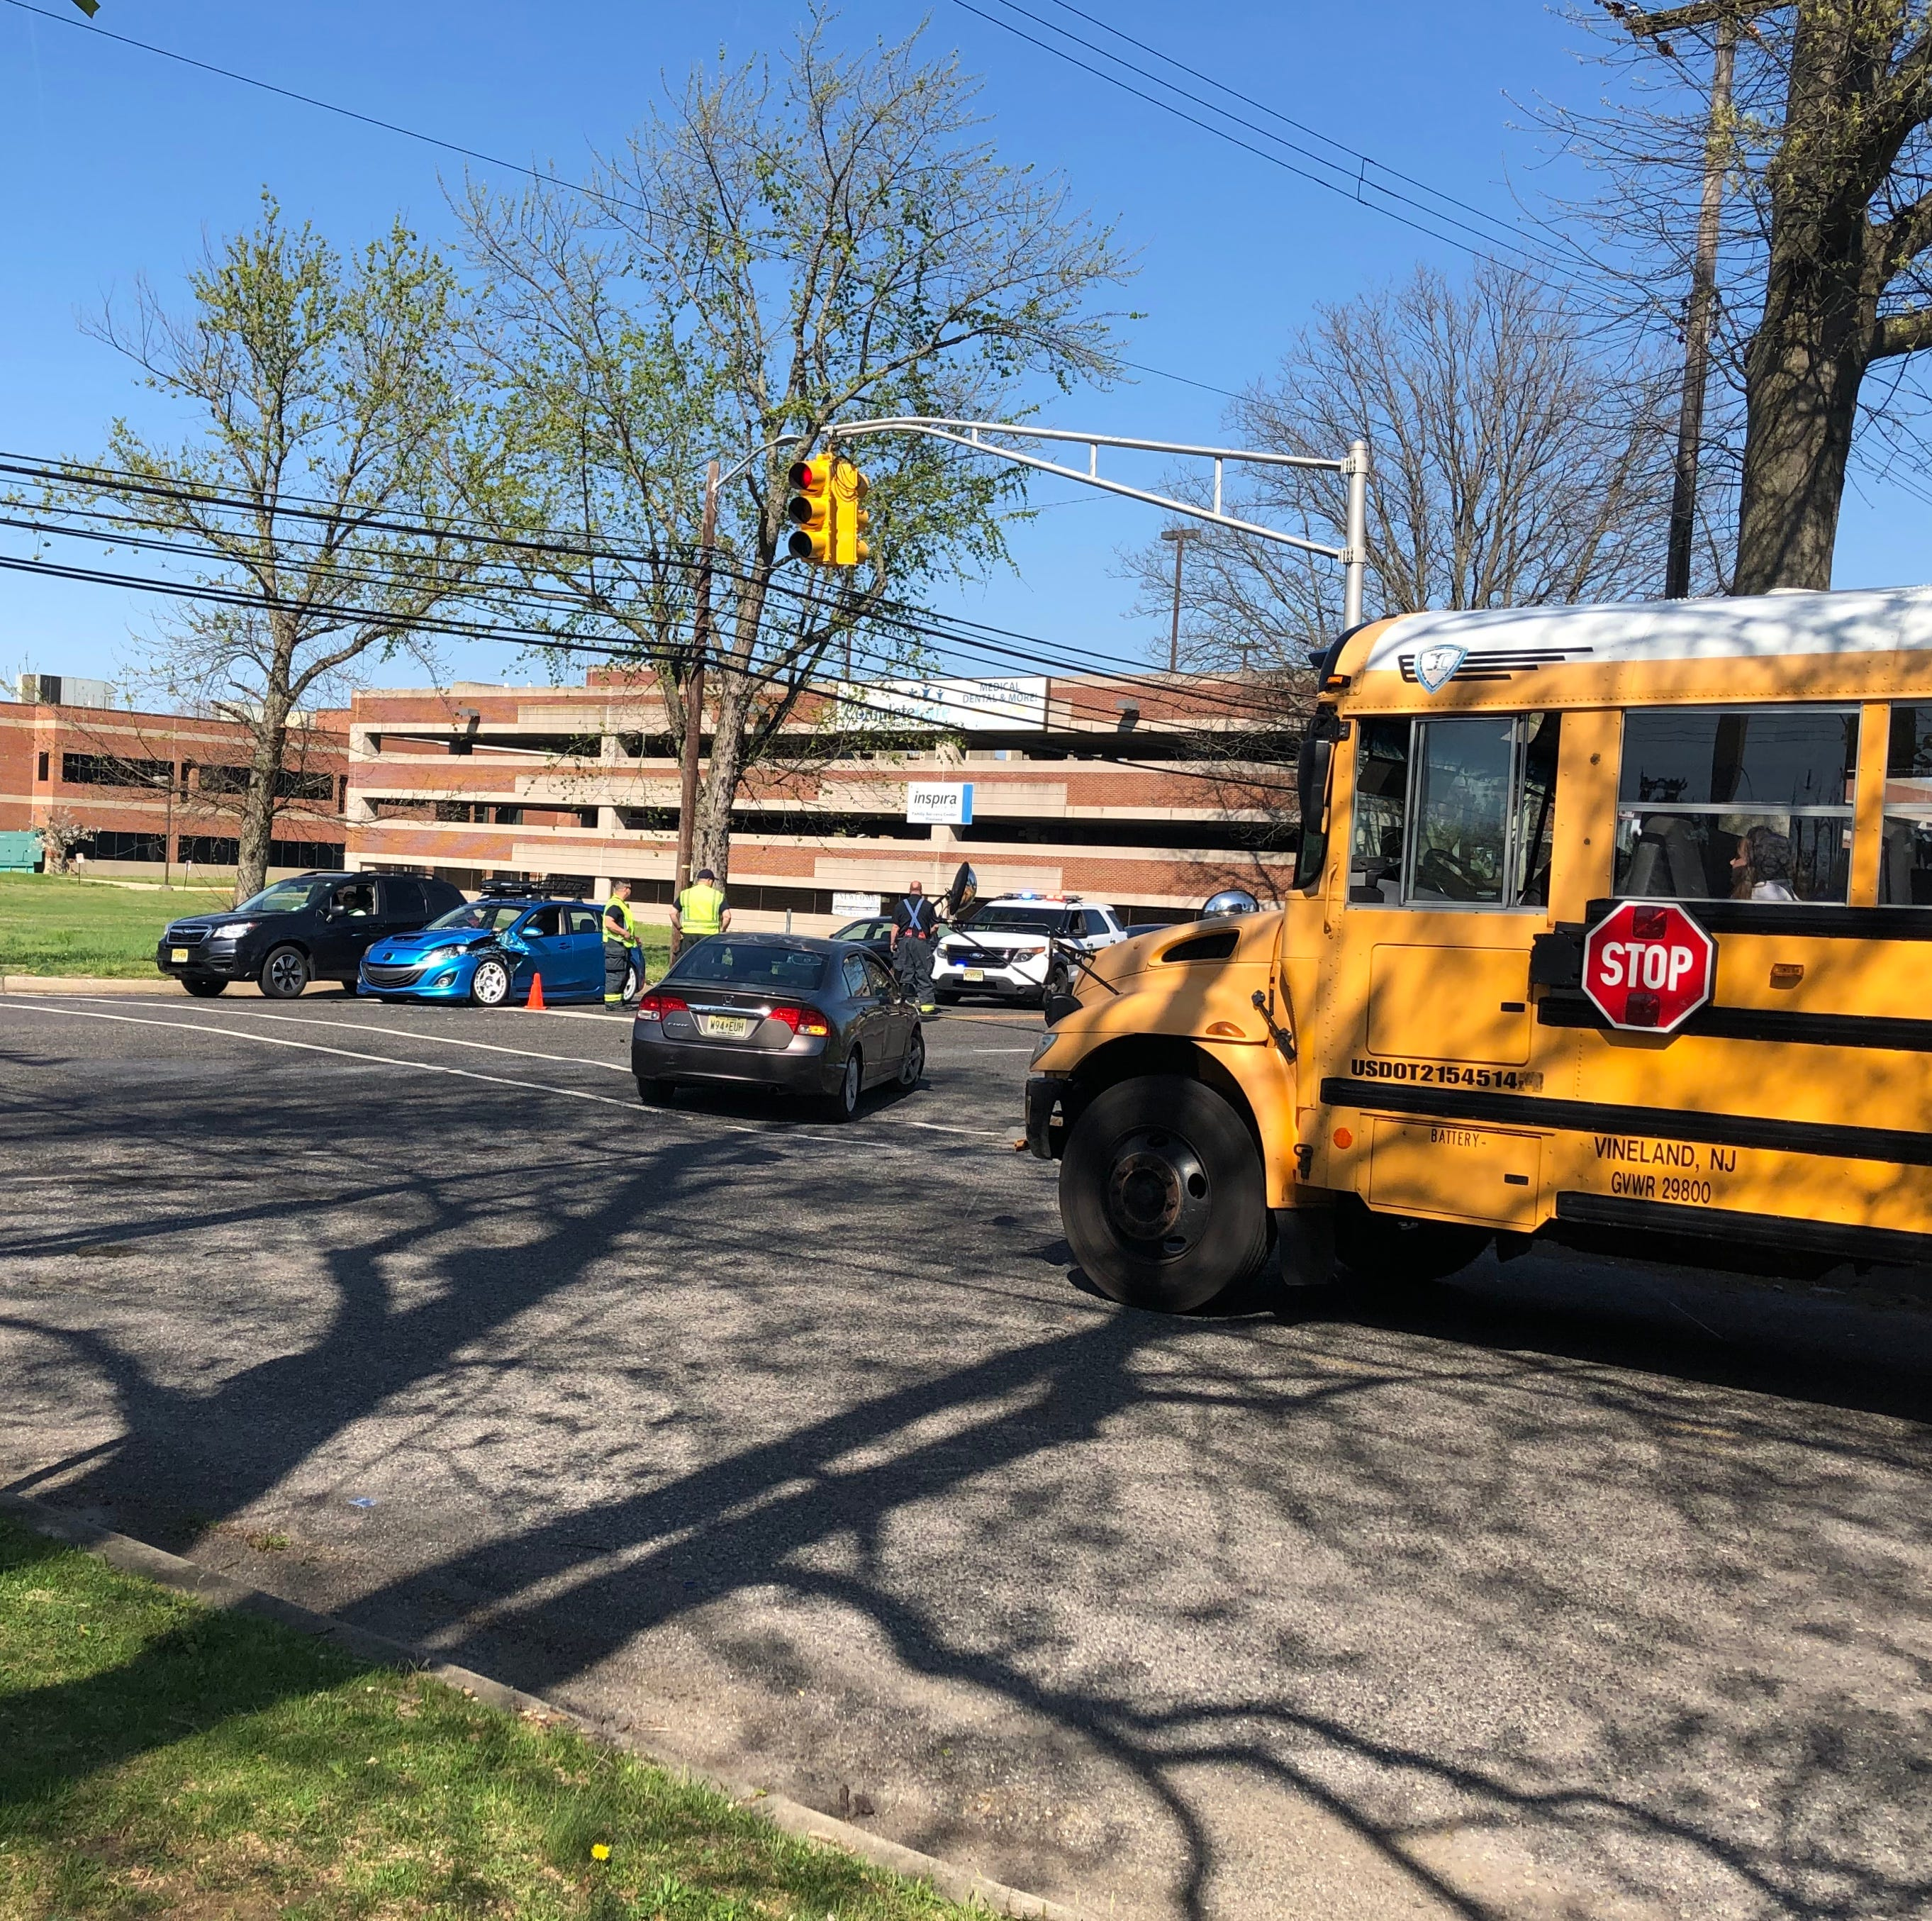 Vineland Police investigating a collision involving a school bus